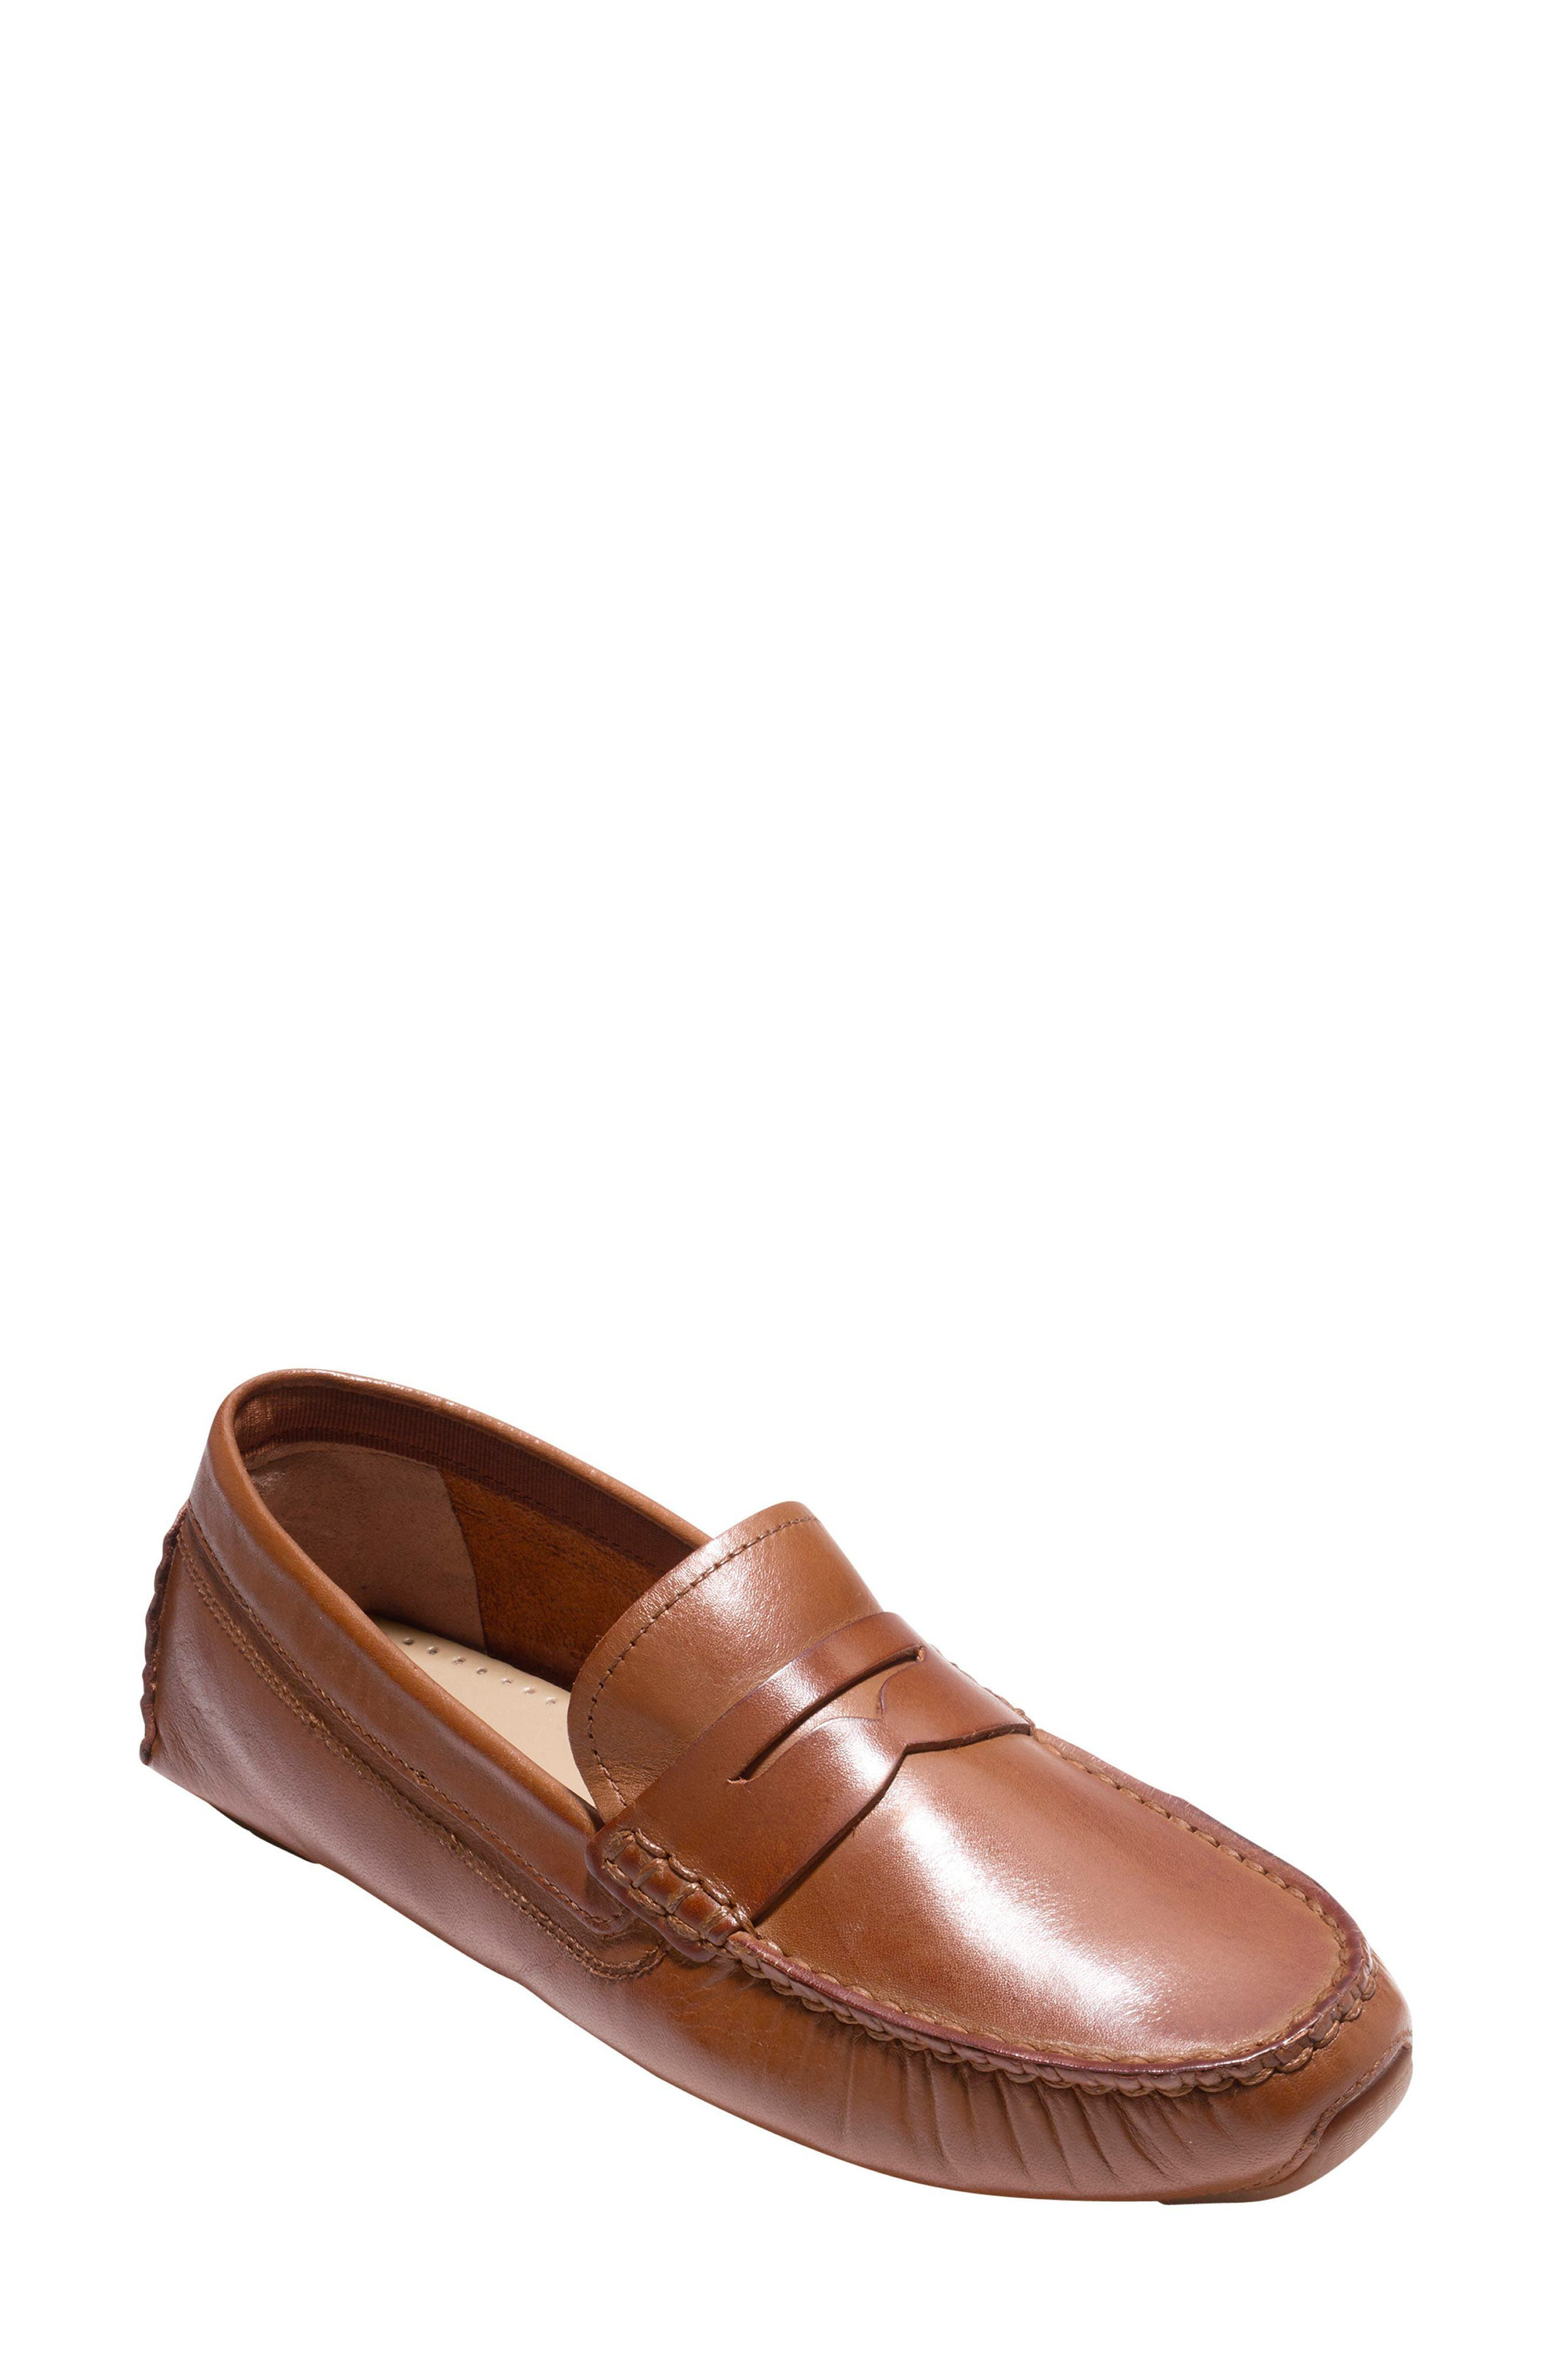 Rodeo Penny Driving Loafer,                             Main thumbnail 1, color,                             200